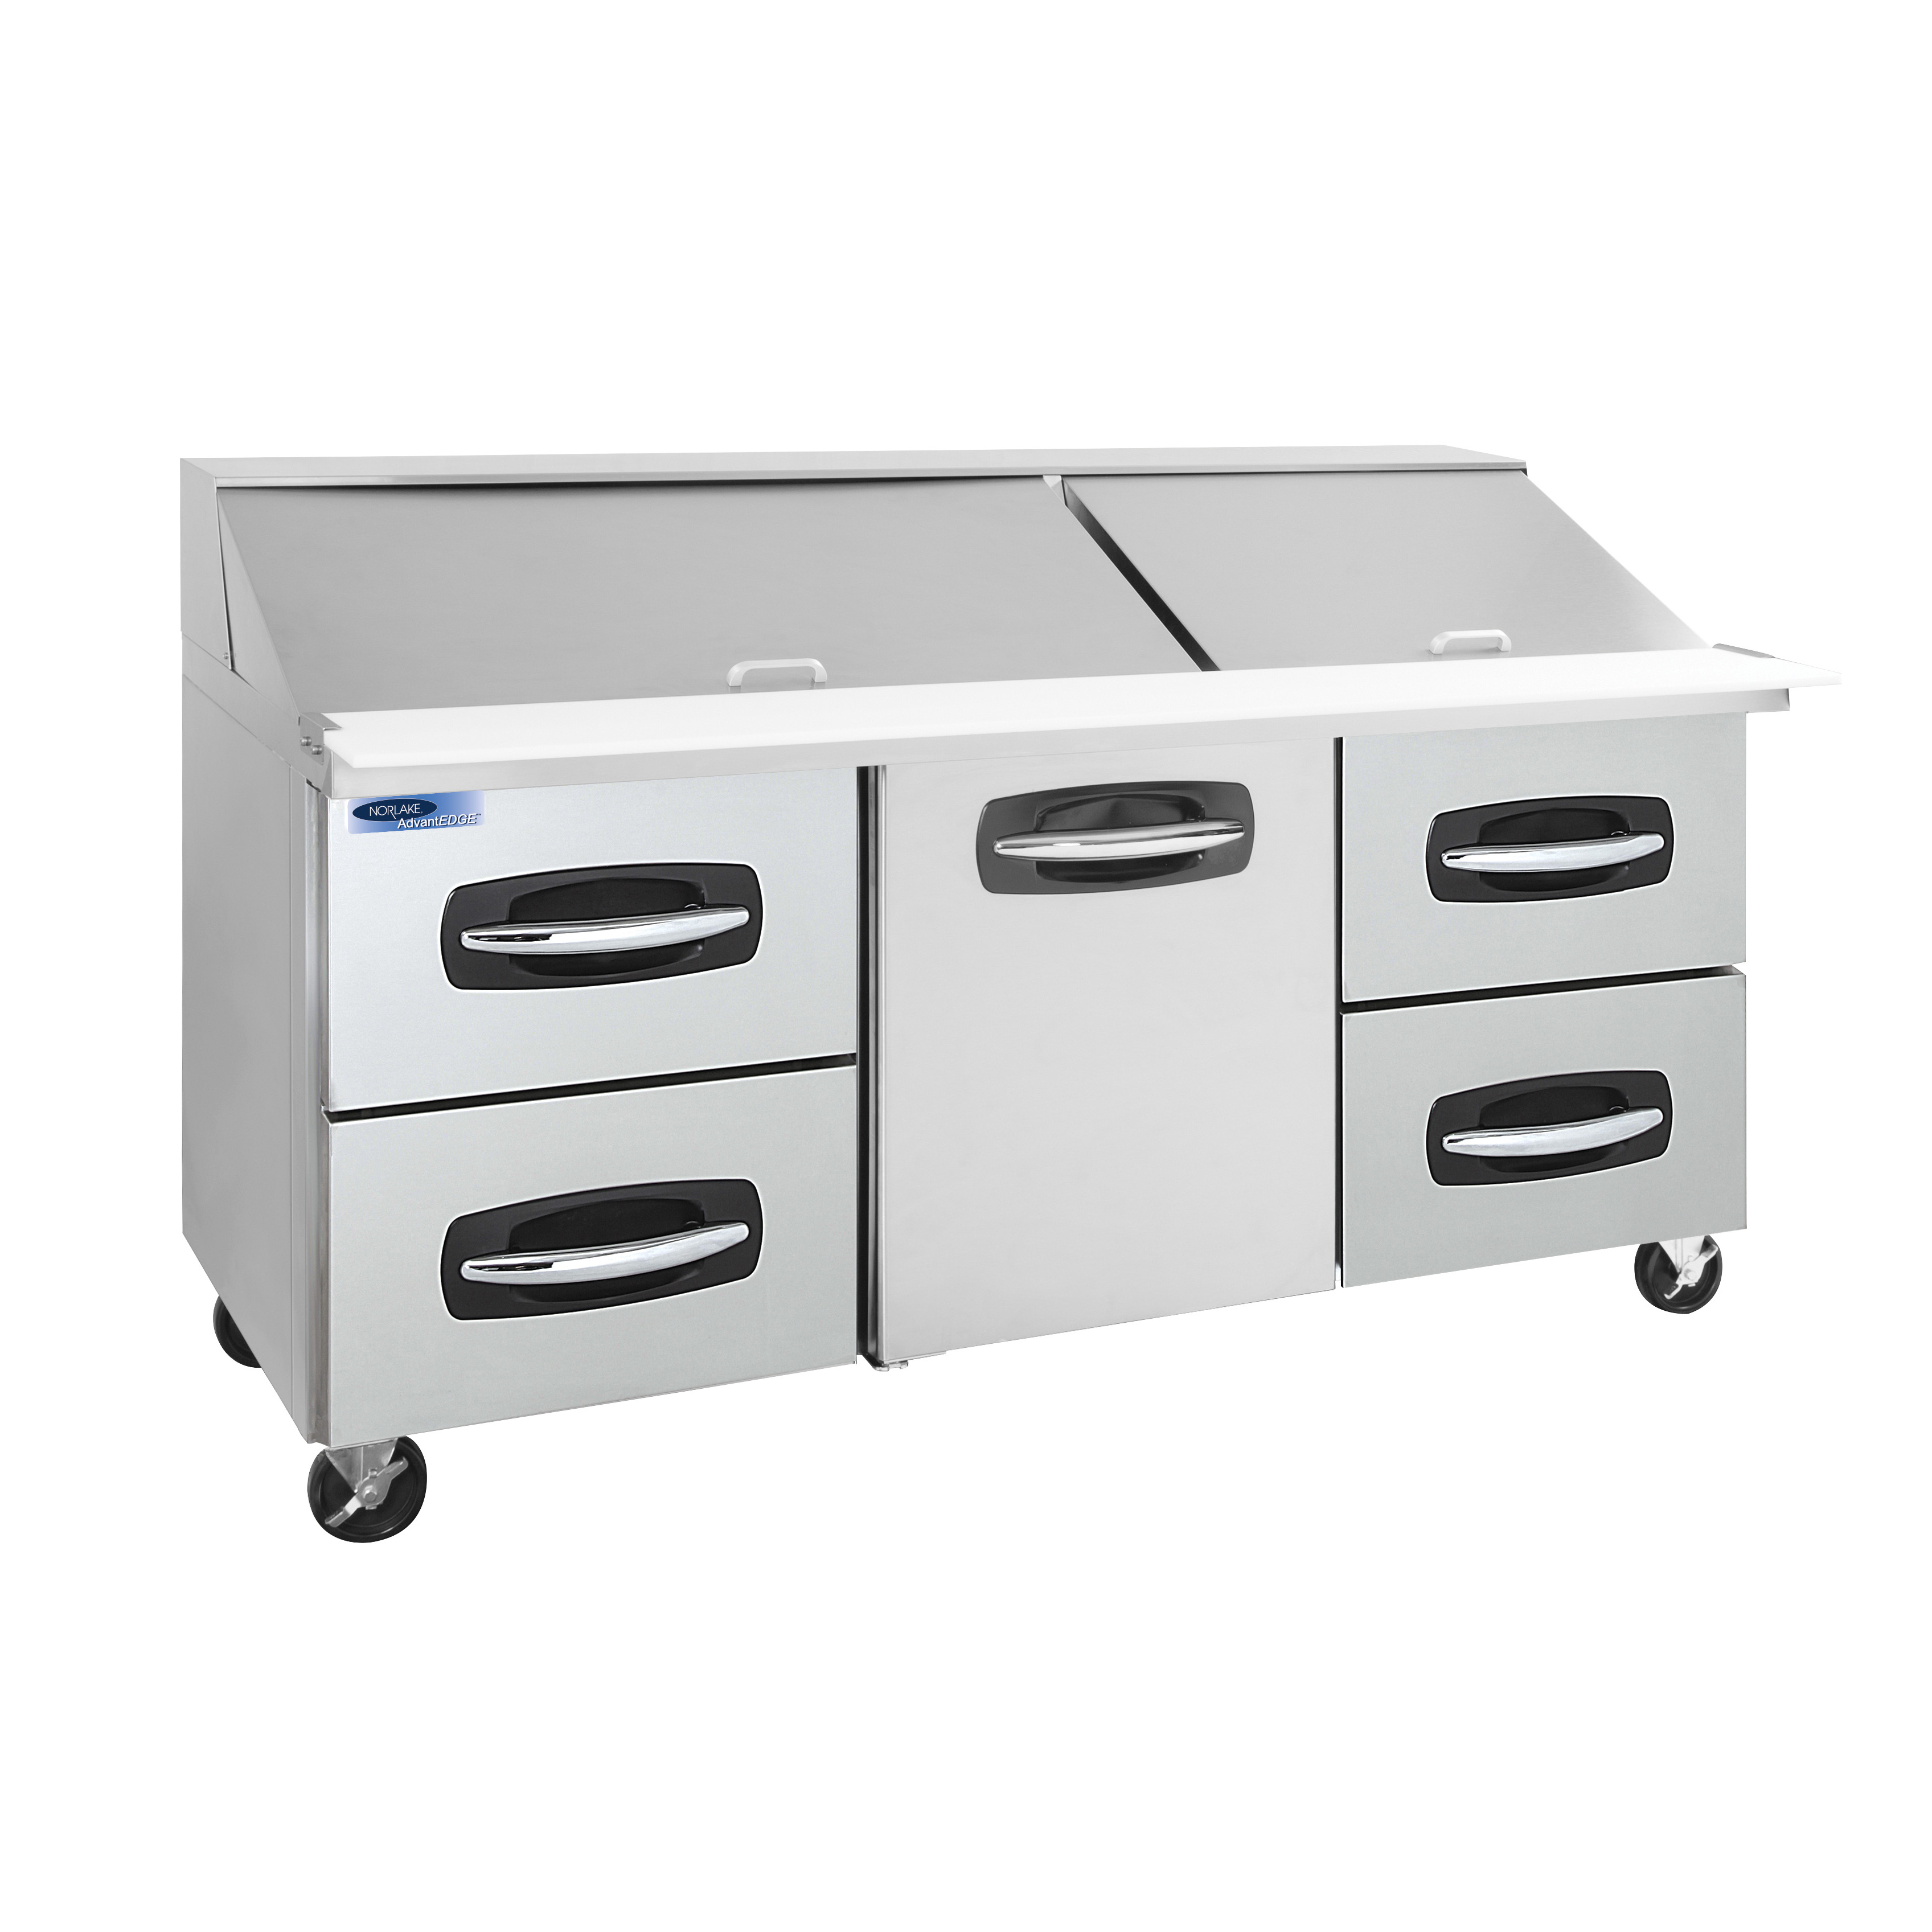 Nor-Lake NLSMP72-30A-005B refrigerated counter, mega top sandwich / salad unit